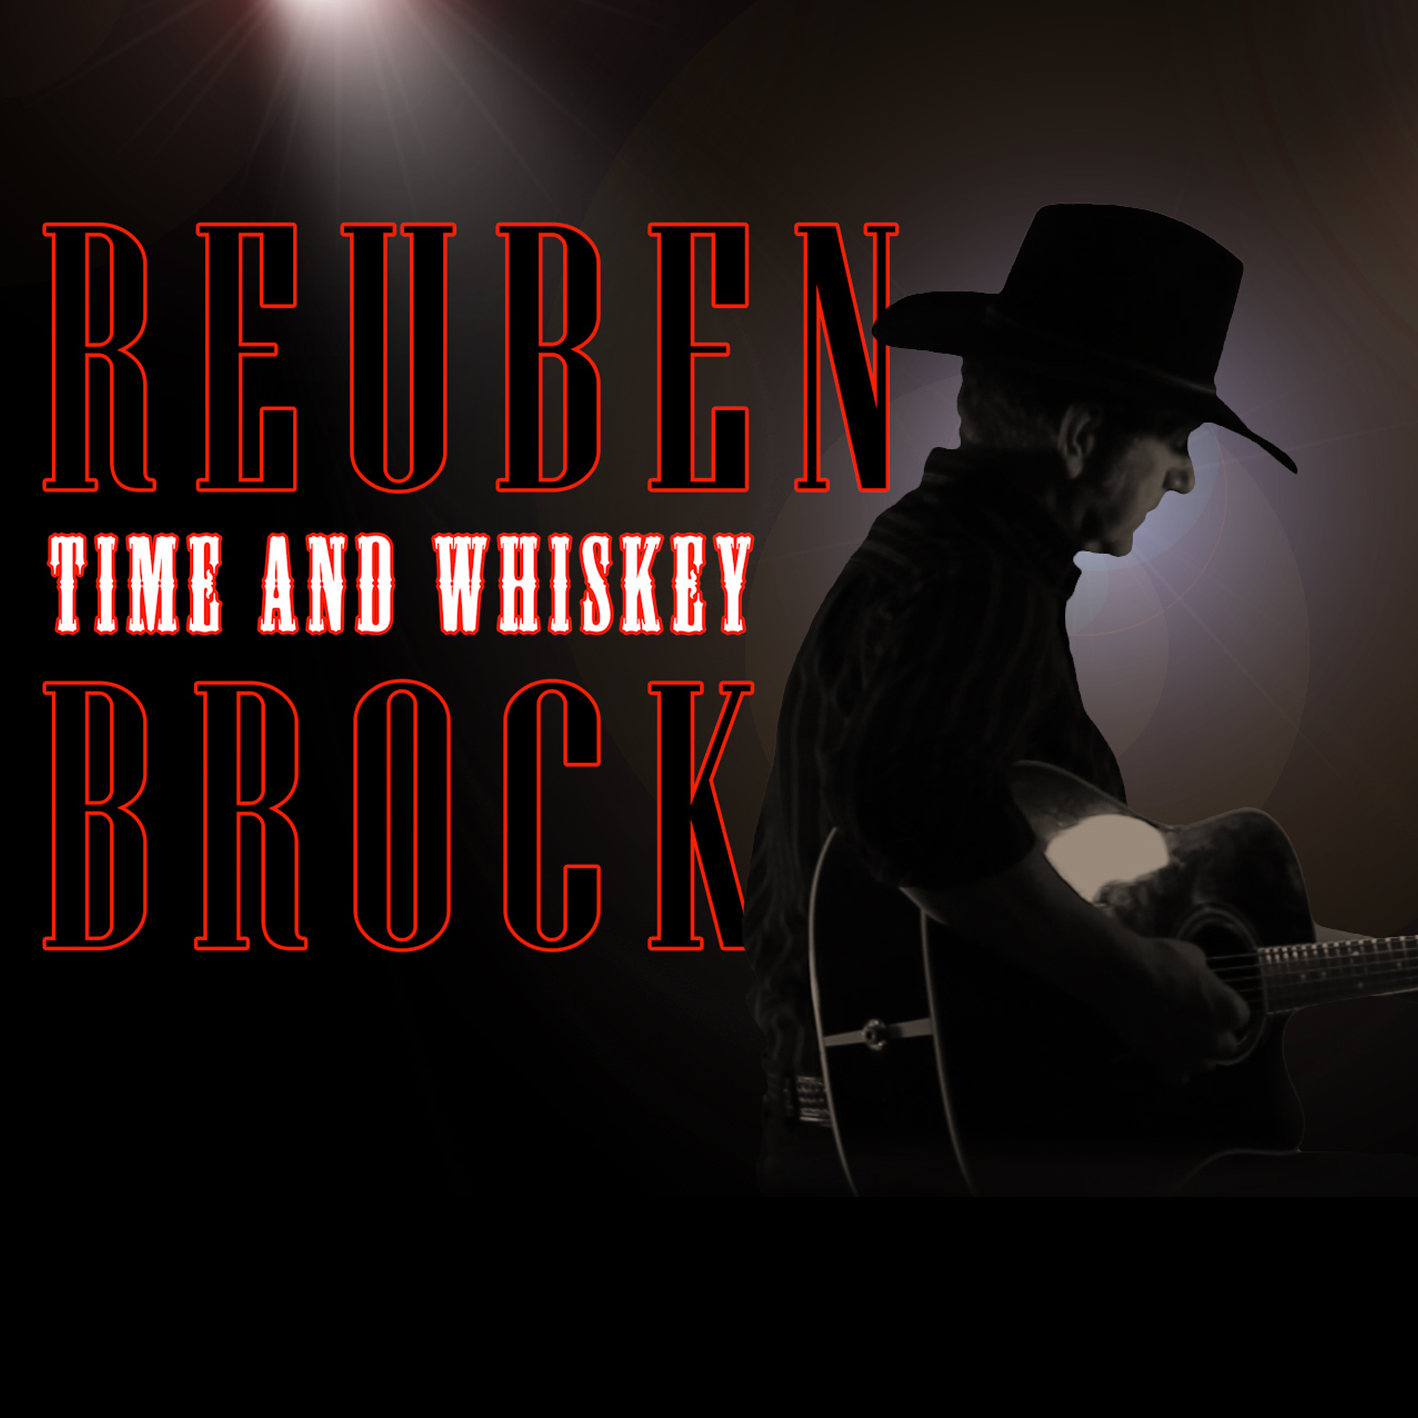 Time and Whiskey Album